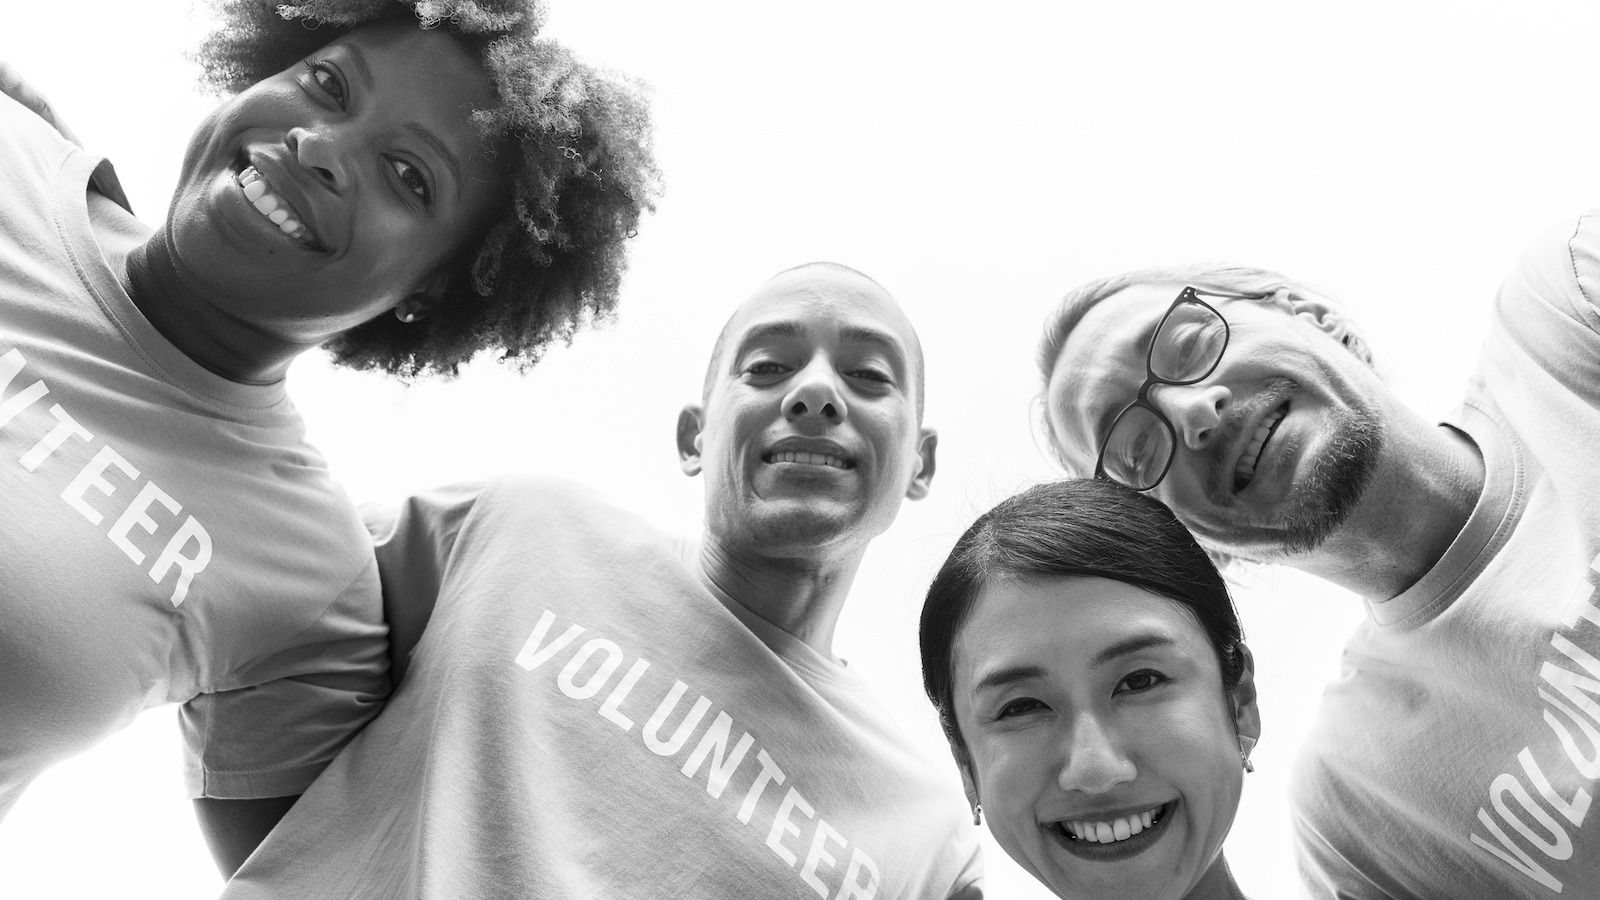 FWD>DFW and VOMO help people find volunteer opportunities across North Texas.